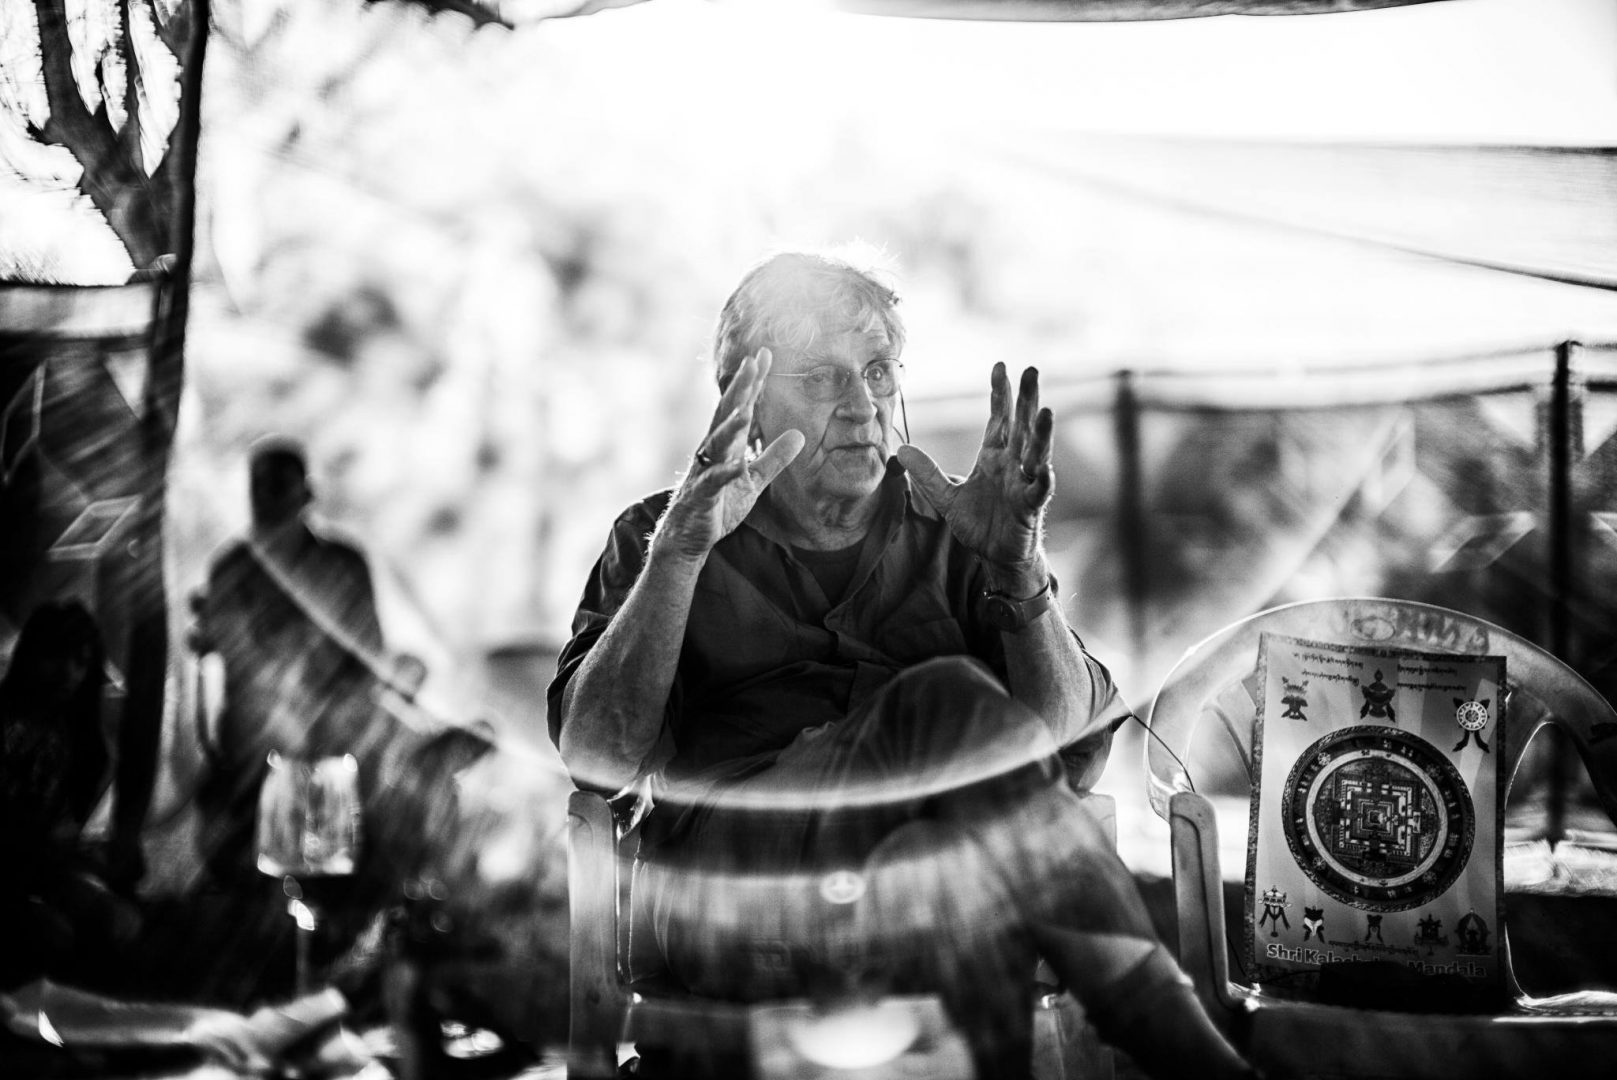 """Pilgrimage : Buddhist Soul - Ep. 21 of the Bob Thurman Podcast"" Photo by Christopher Michel, Used with permission."